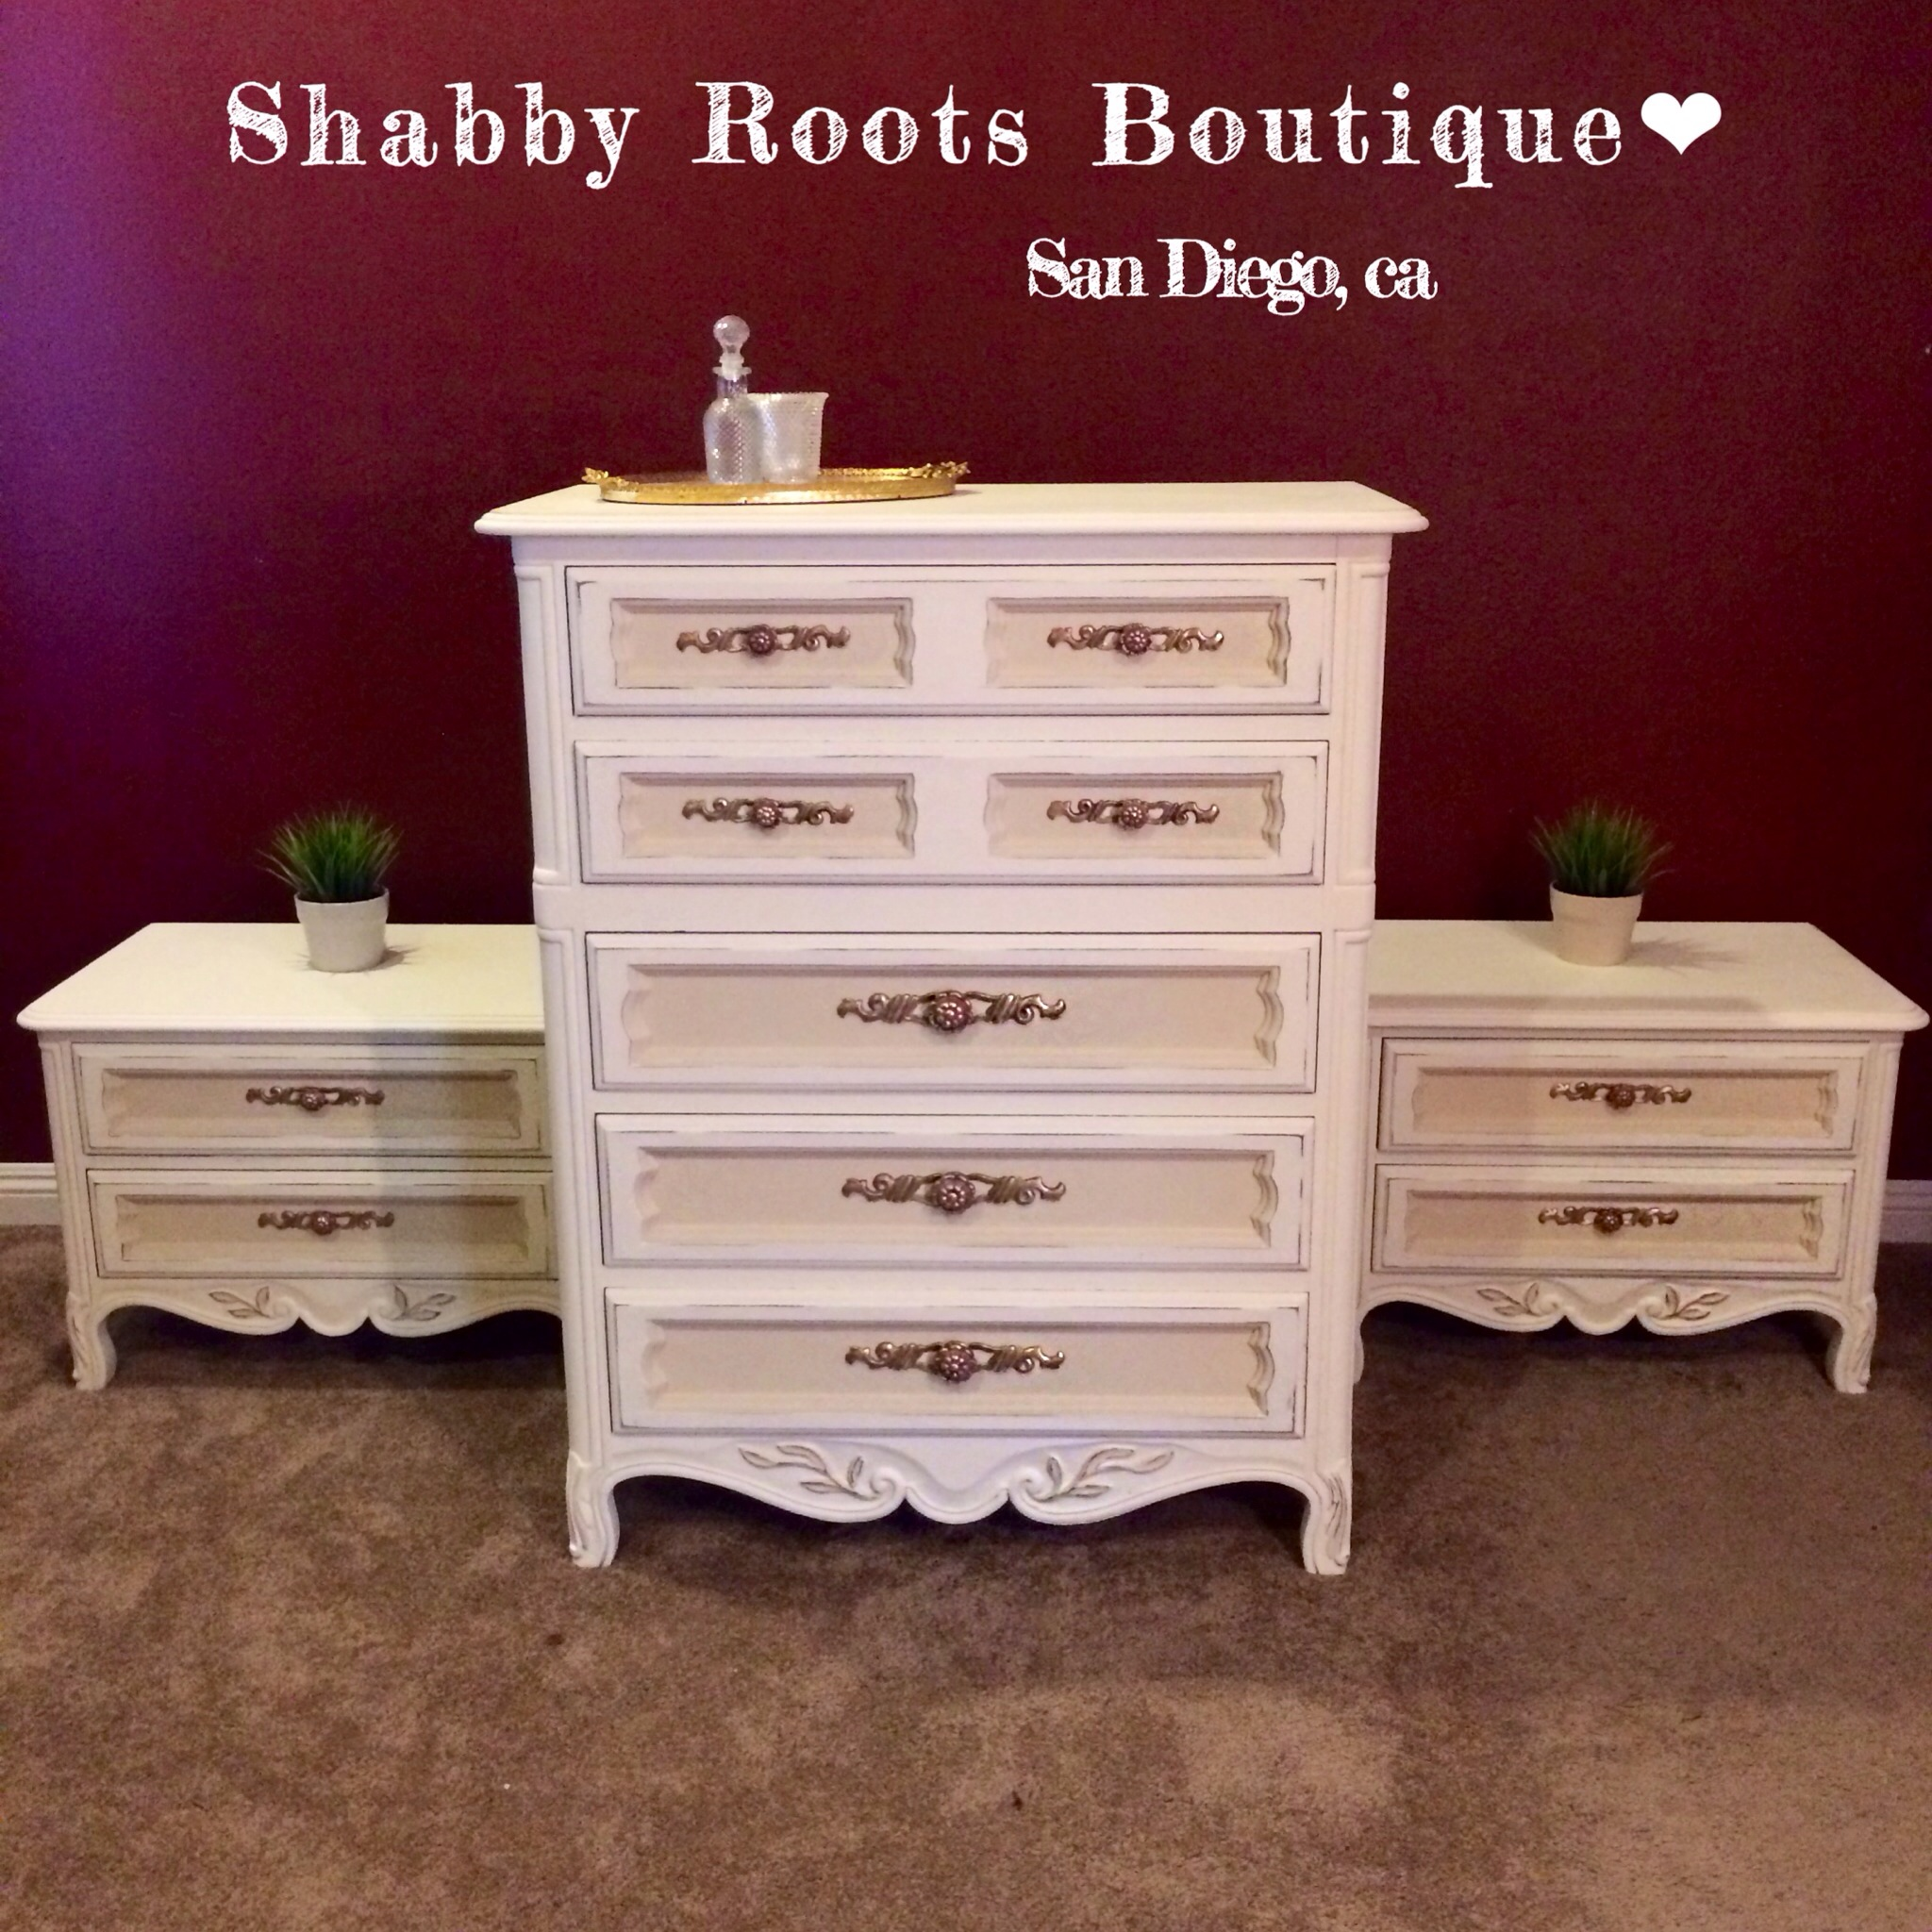 Drexel Vintage Dresser And Matching Night Stands Shabby